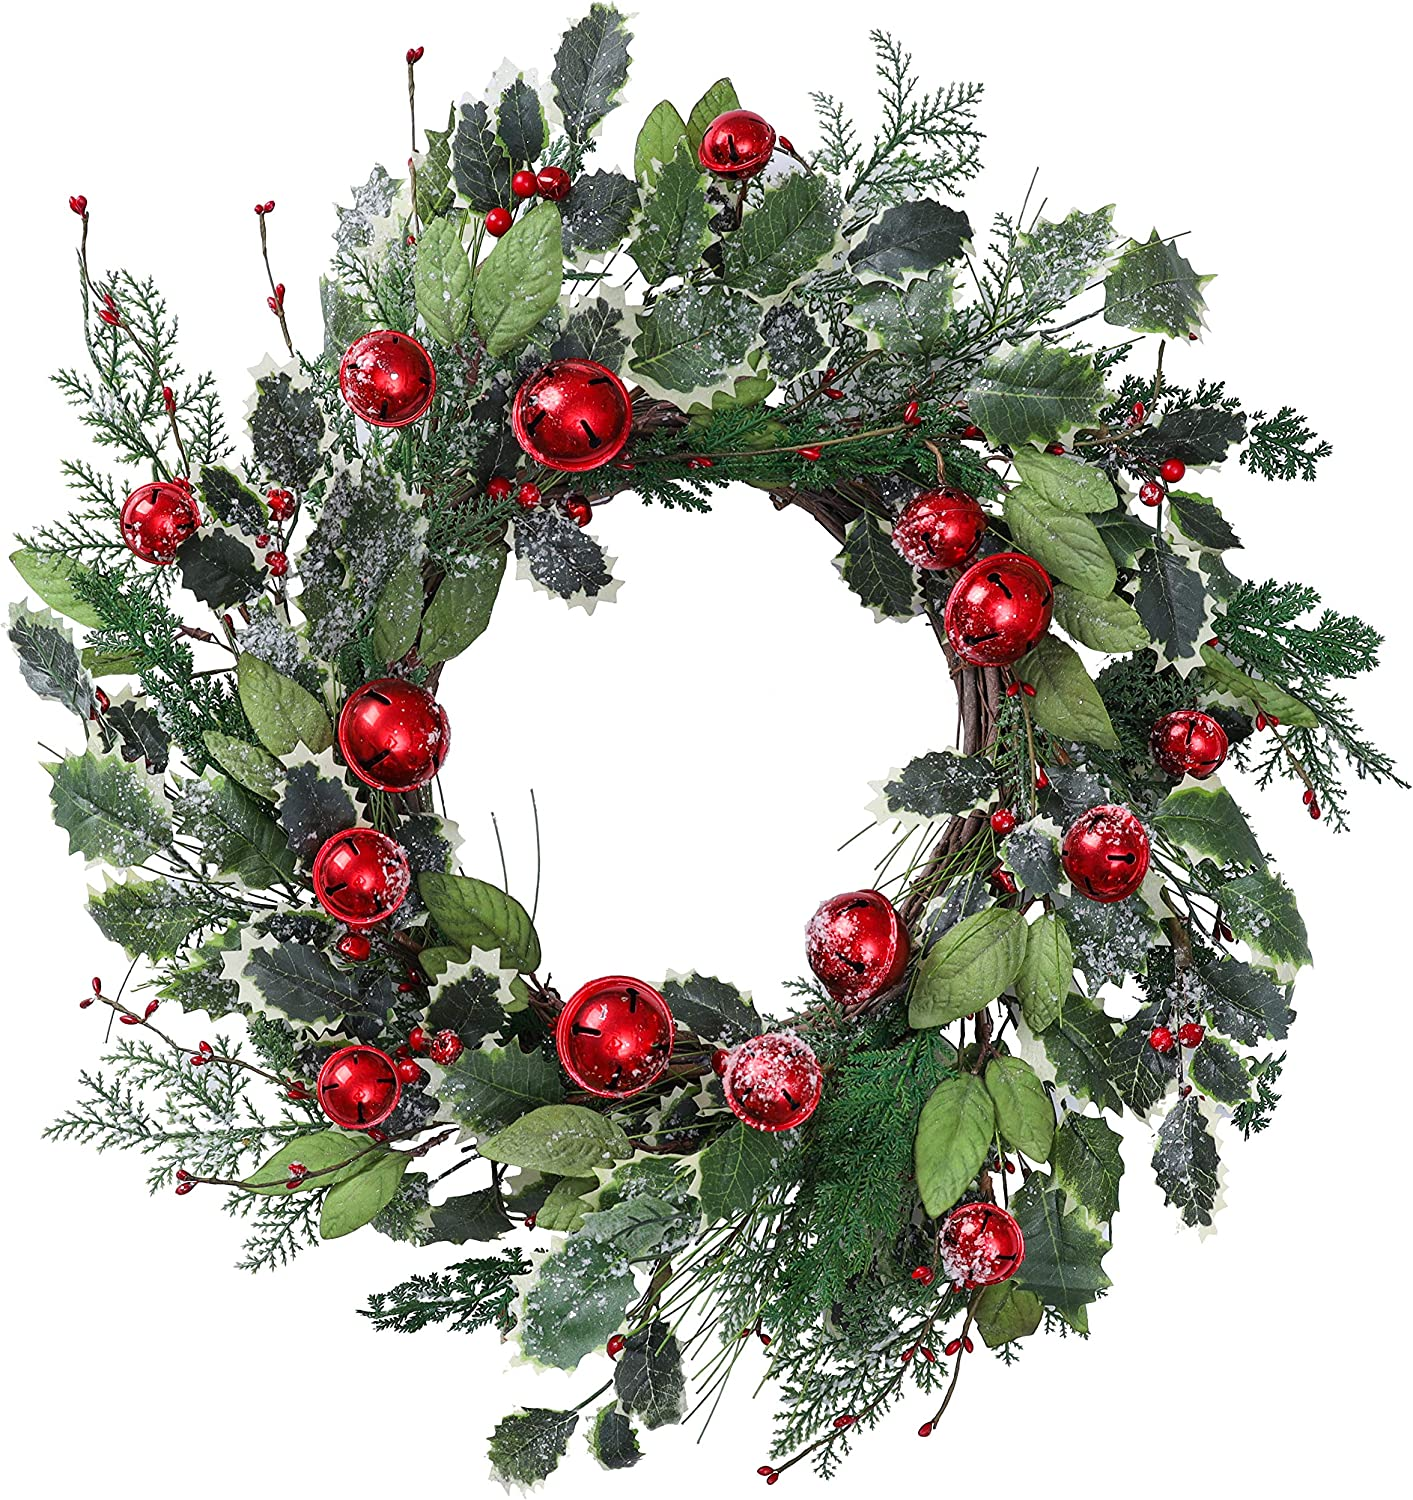 YNYLCHMX 22 Inch Artificial Christmas Wreath for Front Door, Door Wreath Flushed with Snowflake Green Leaves with Red Bells with Pine Needle, Home Decor for Indoor, Windows, Holiday, Decoration